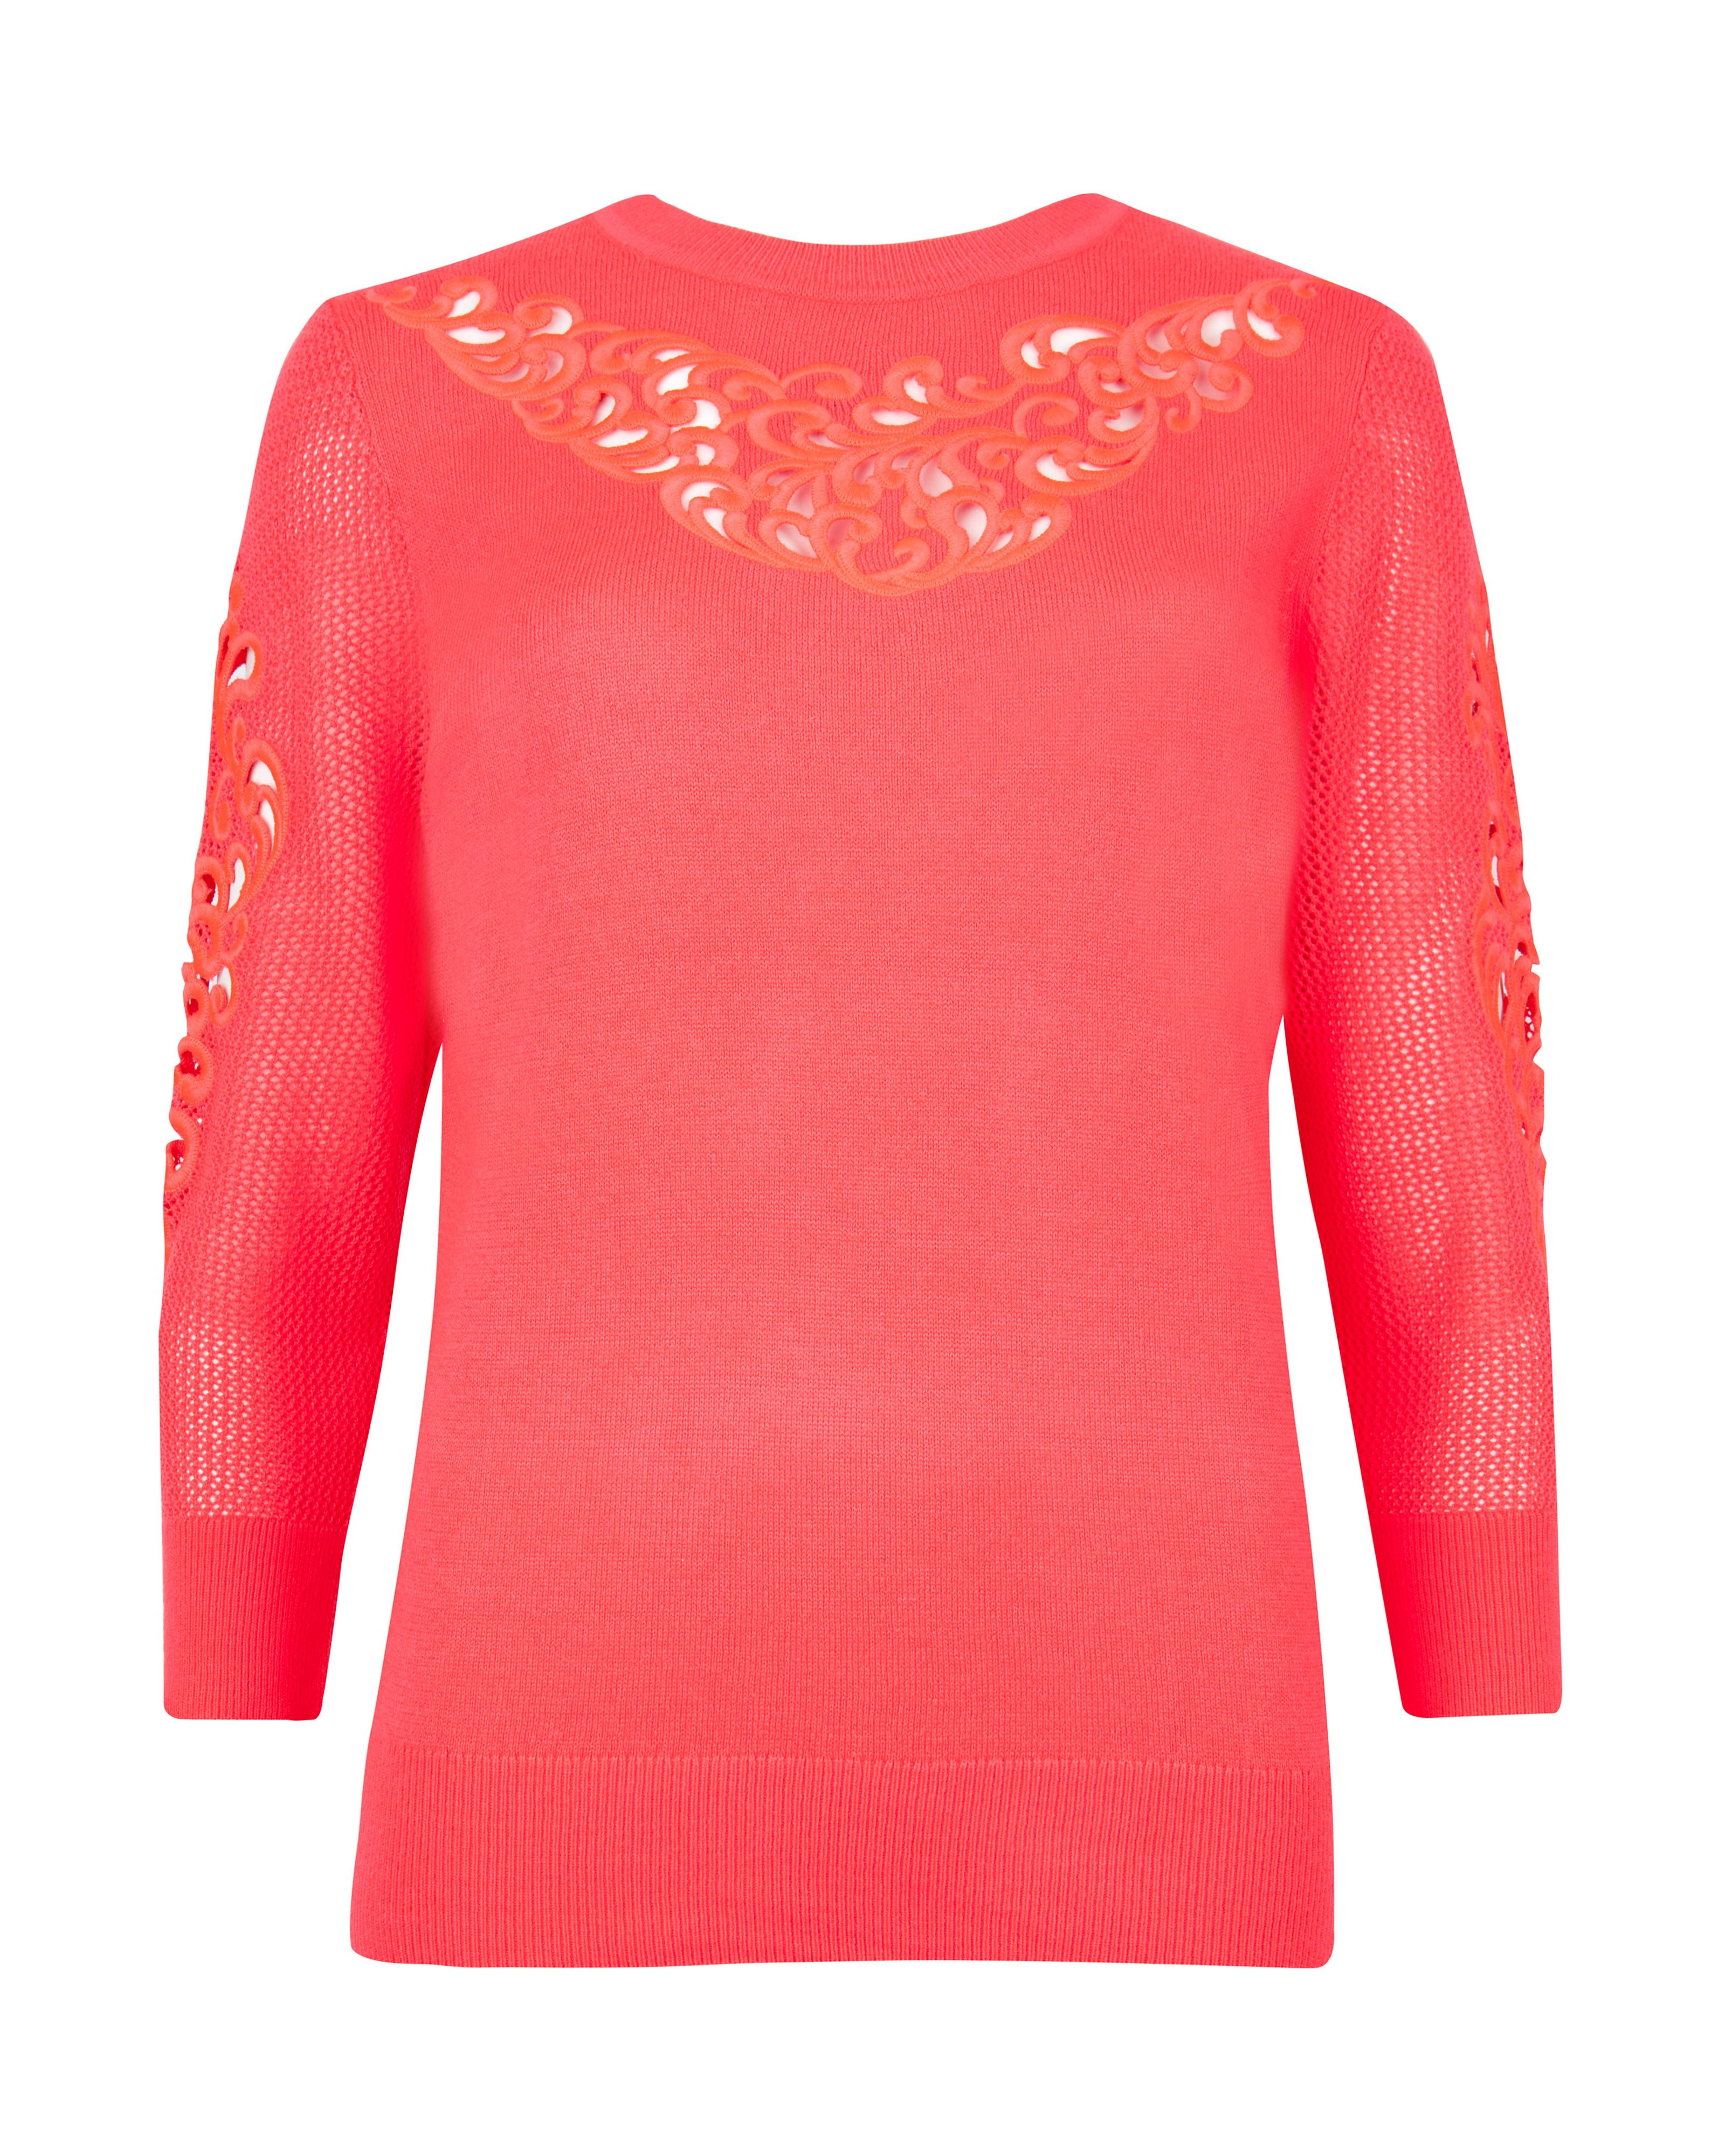 Talula embroidered jumper